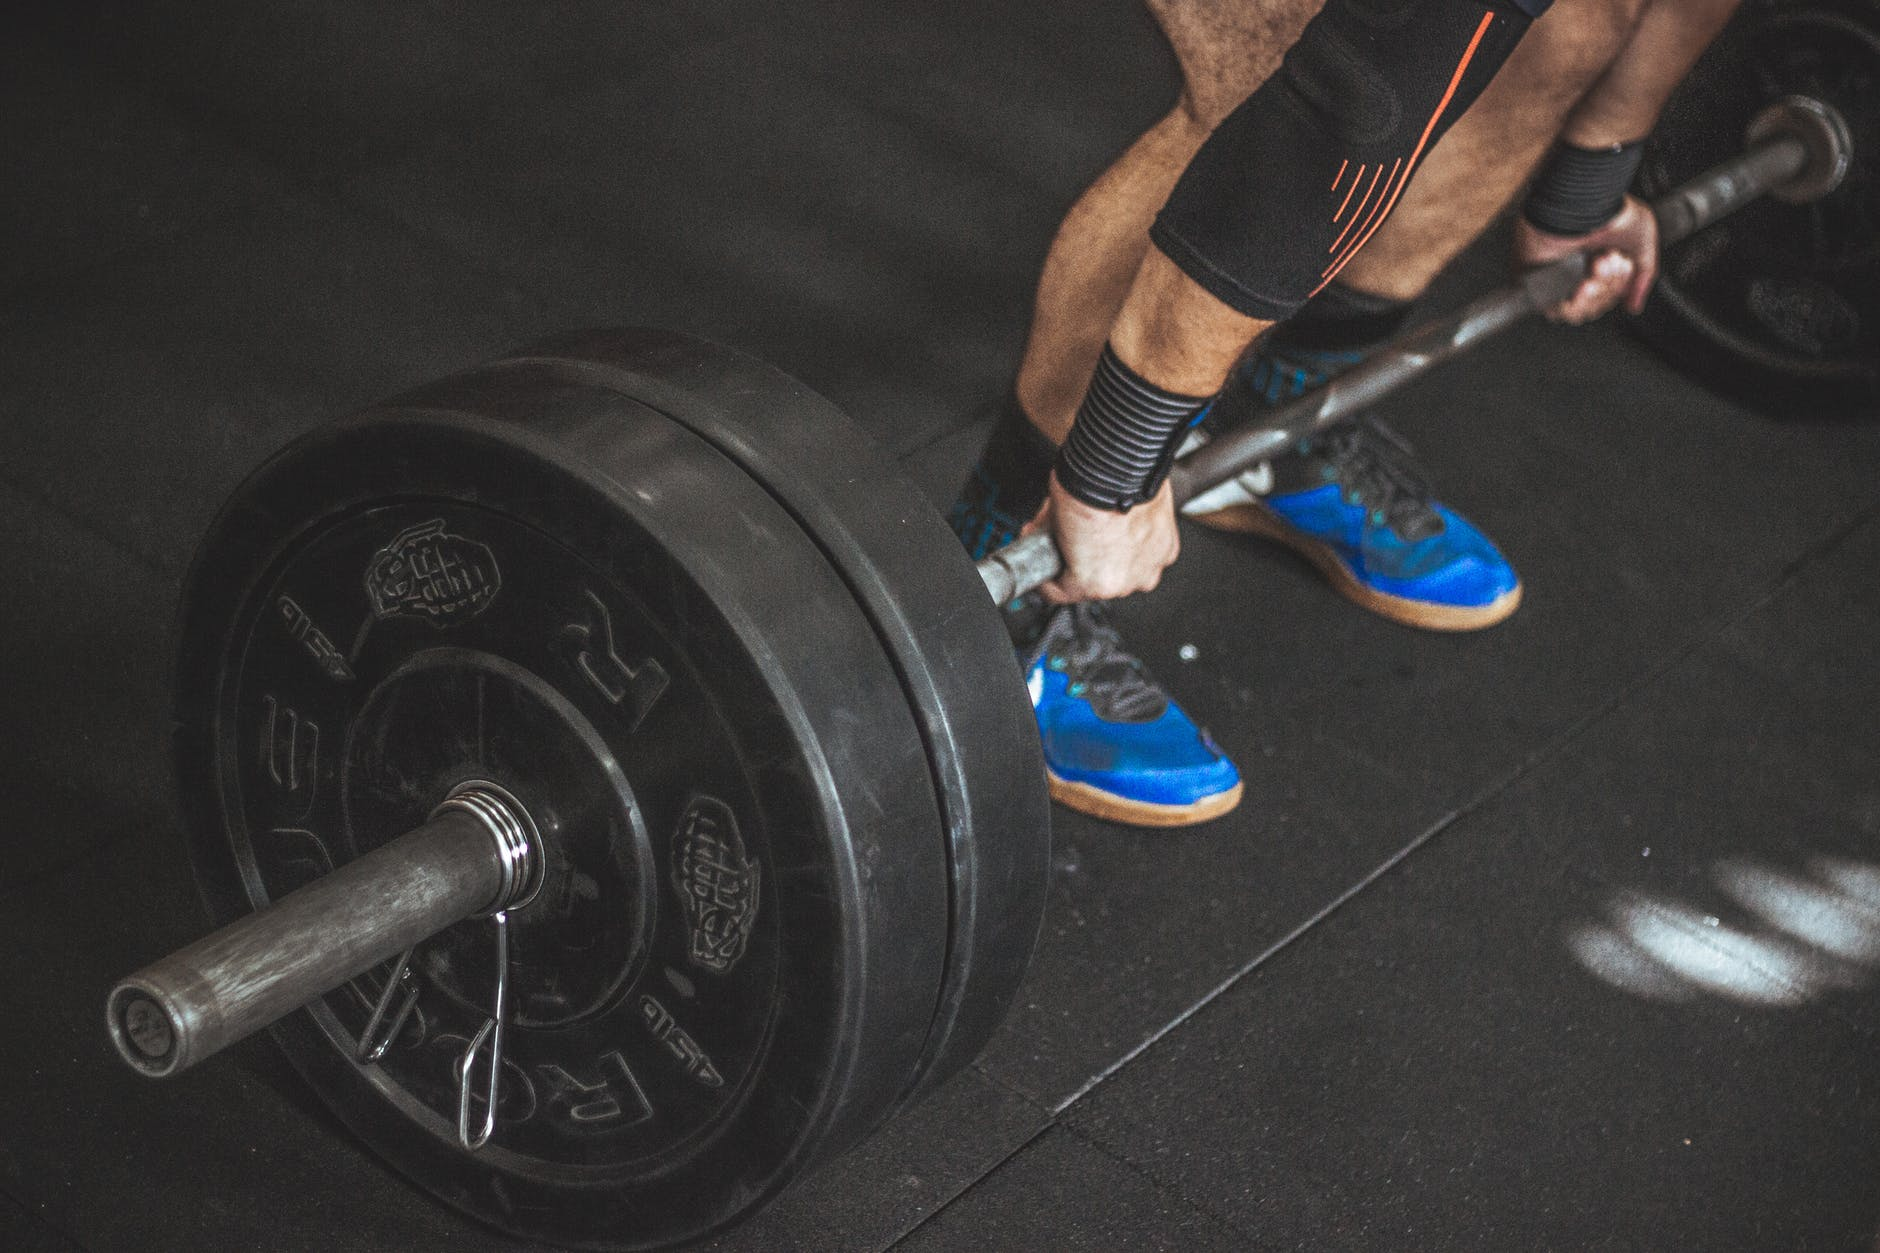 An in-depth review of the best weight lifting shoes in 2018